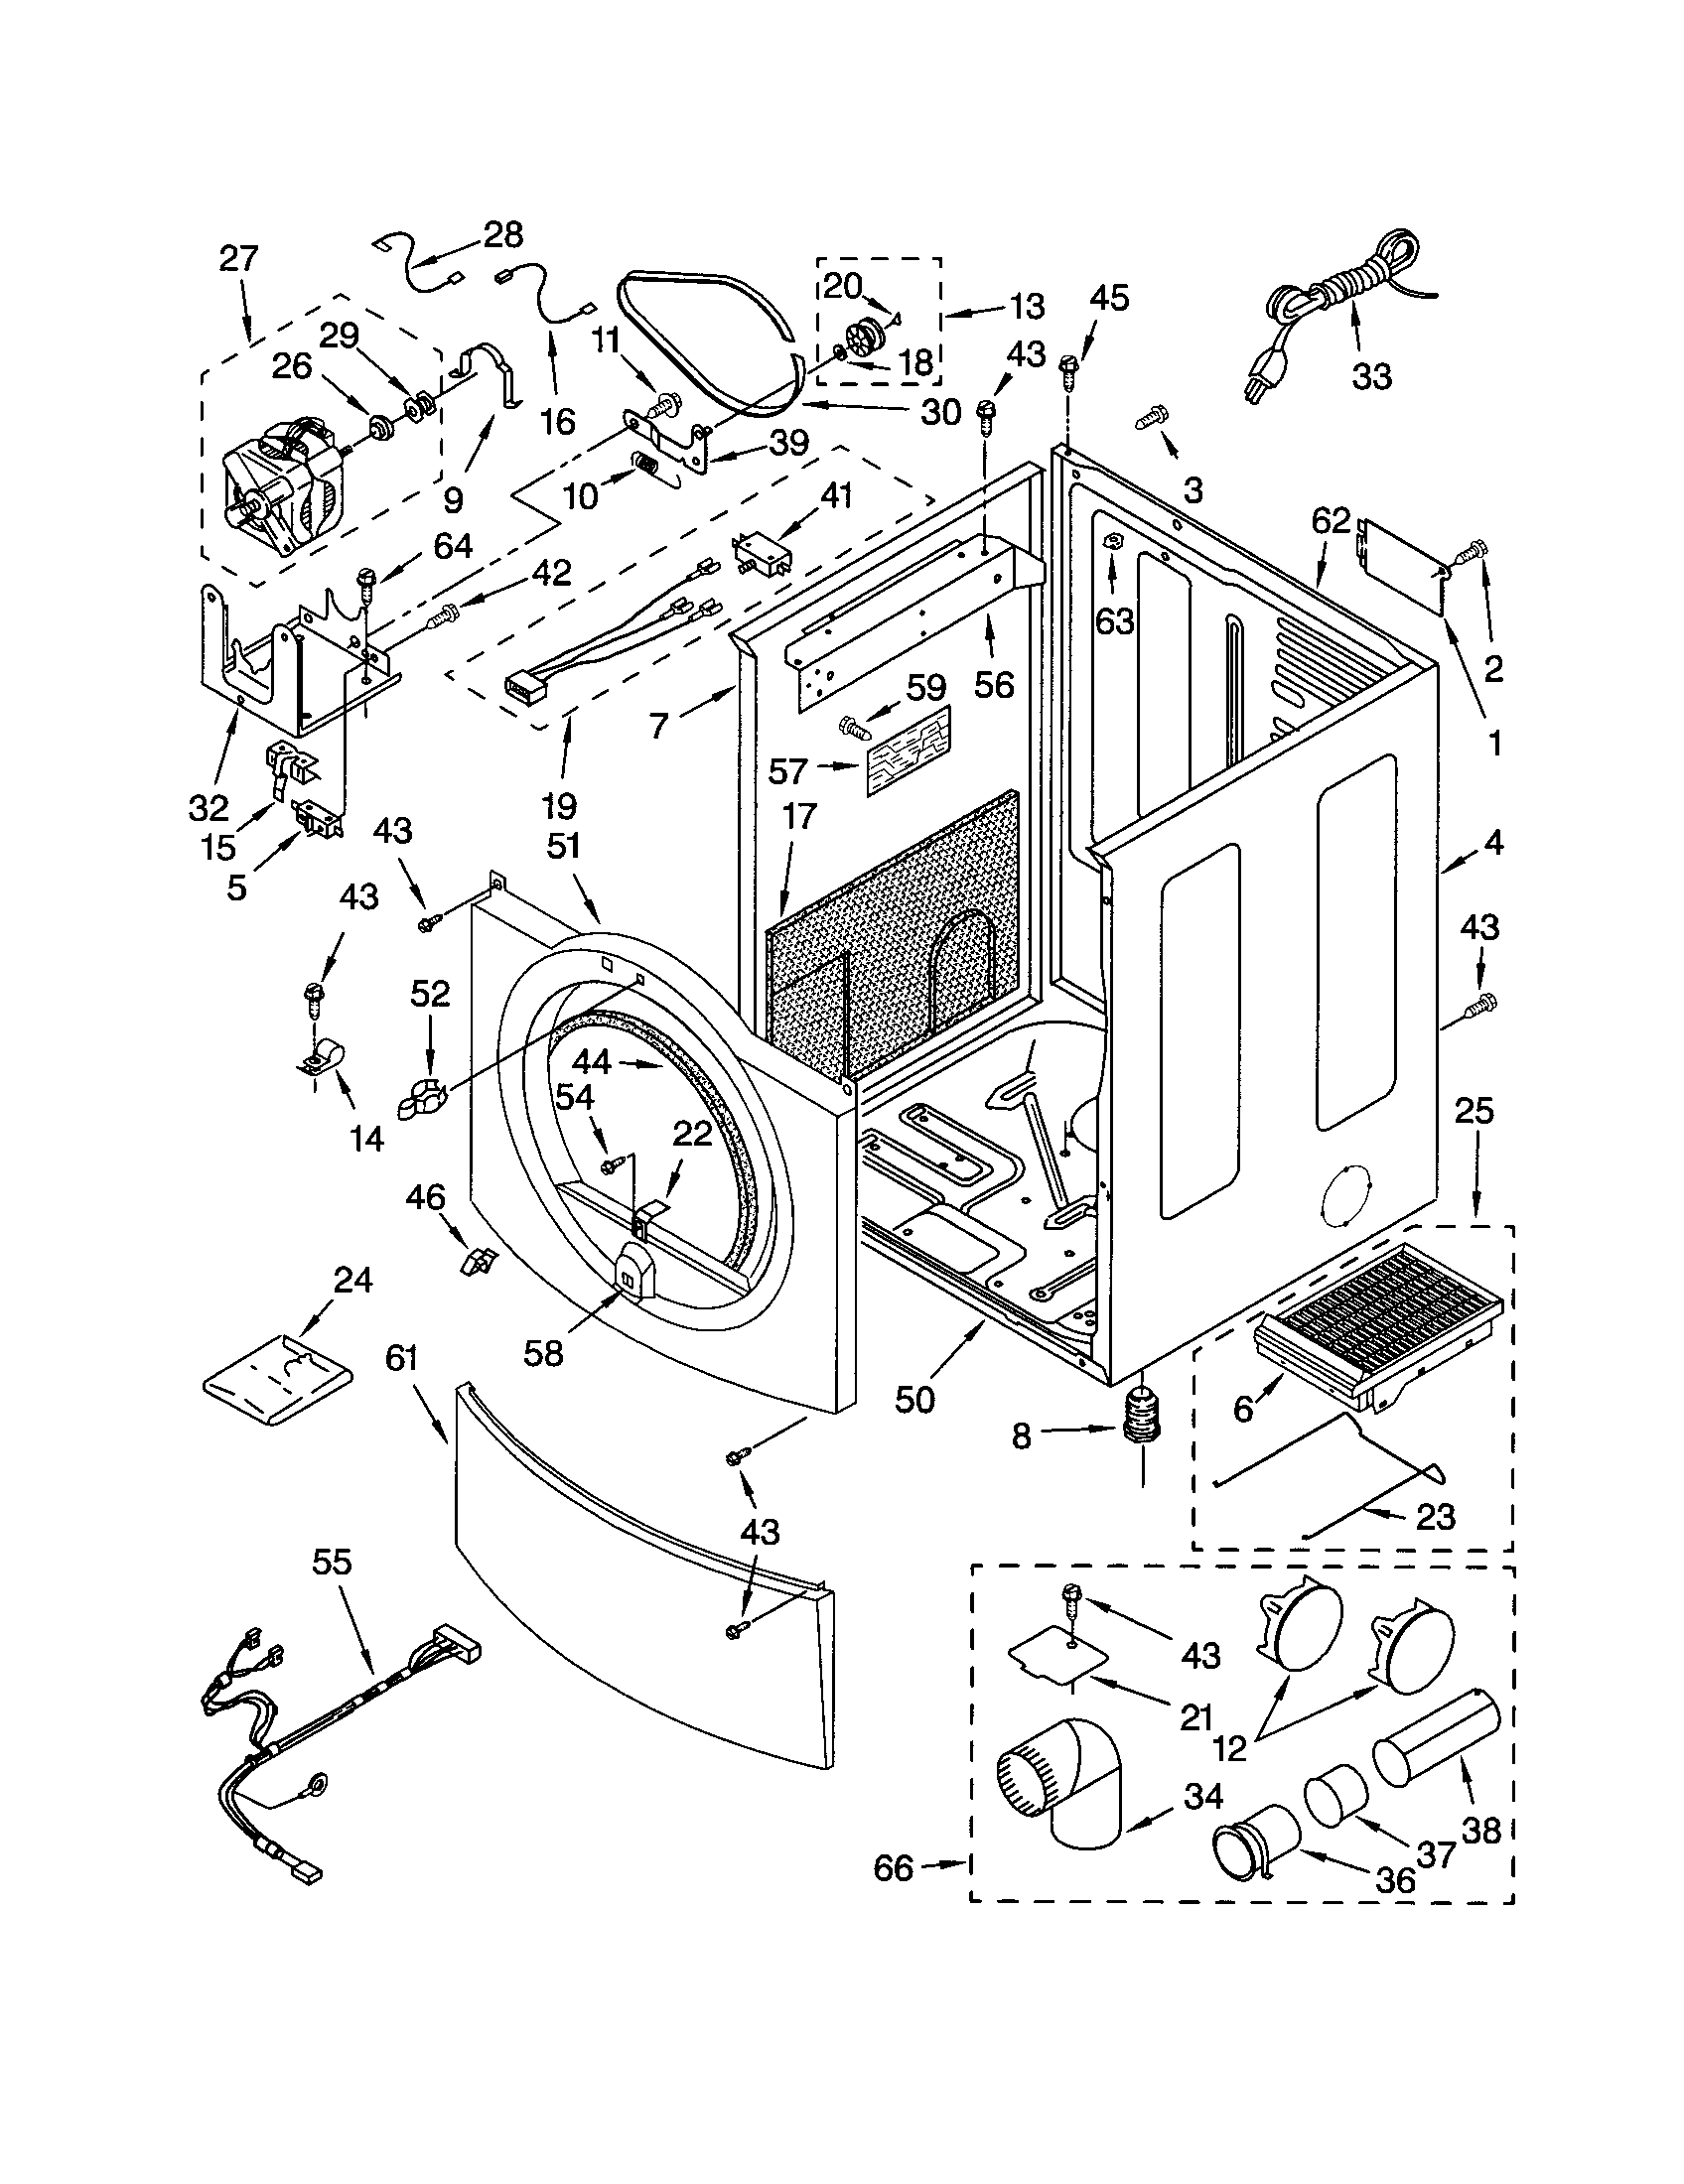 sears model 110 parts diagram 2 wire alternator wiring cabinet and list for 11092824100 kenmore